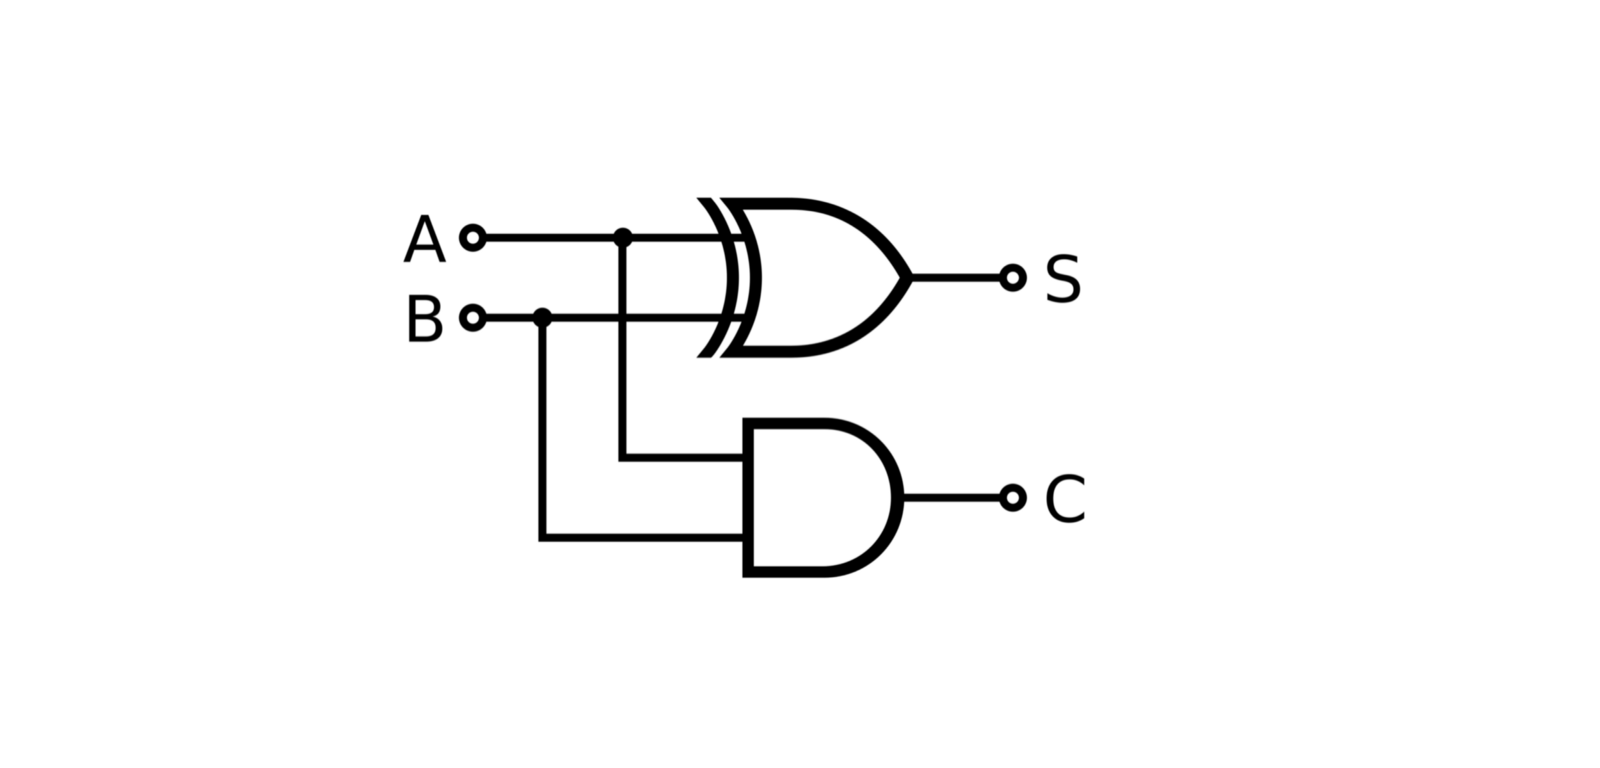 Stateless Stateful Smart Contracts The Bigchaindb Blog Transistors How Circuit Works Electrical Engineering Stack A Simple Digital Half Adder